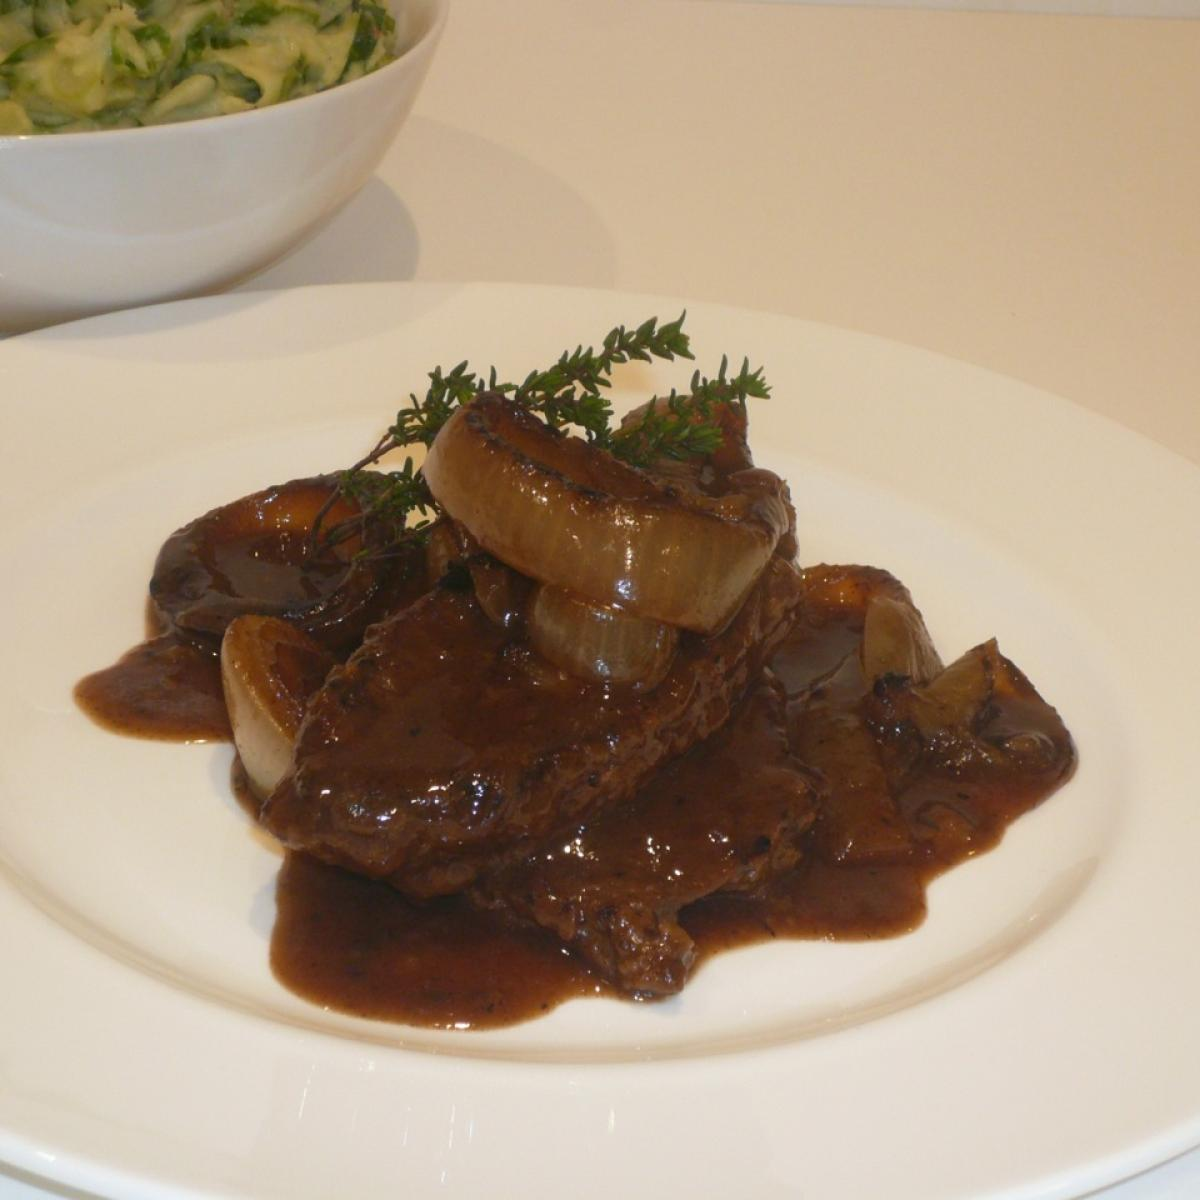 A picture of Delia's Steak and Onions in Guinness recipe